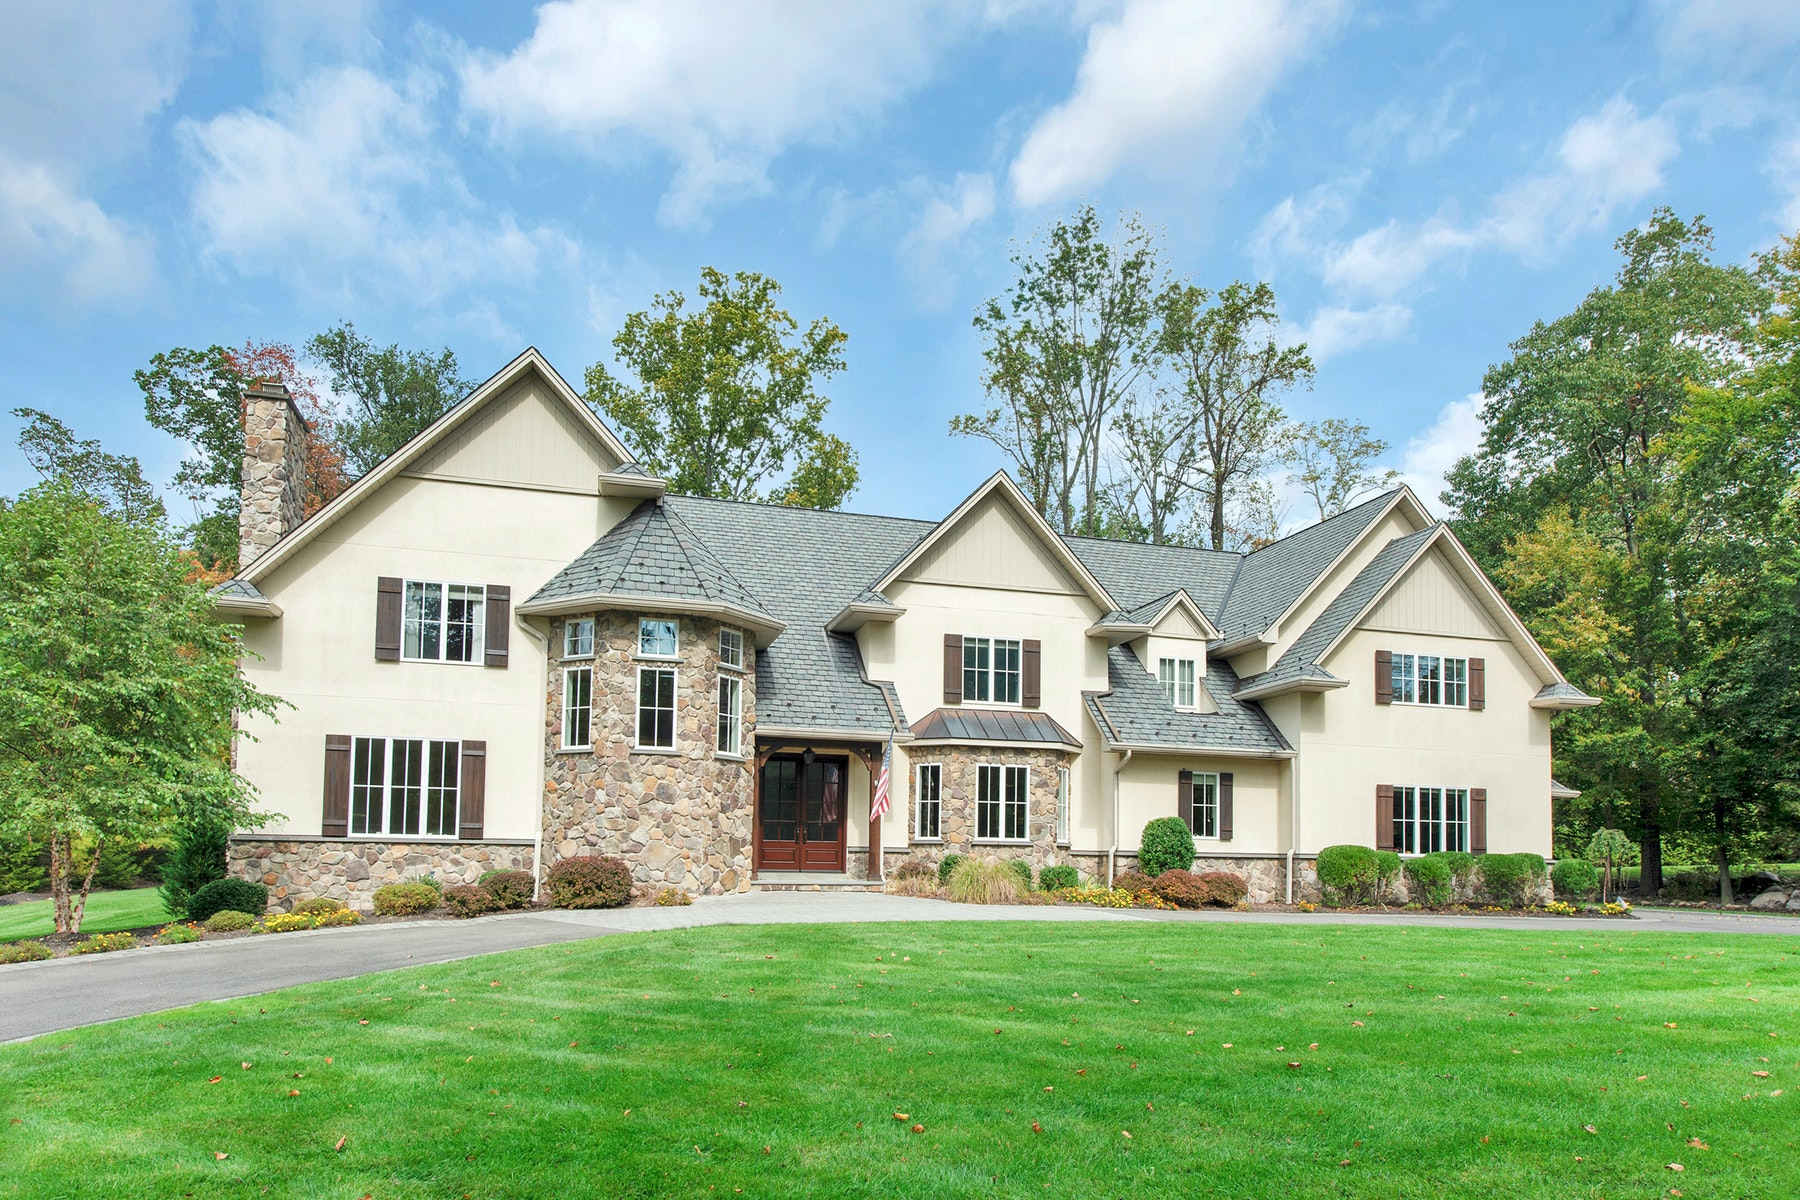 Single Family Homes for Sale at Stunning Custom Home 7 Ware Rd Upper Saddle River, New Jersey 07458 United States